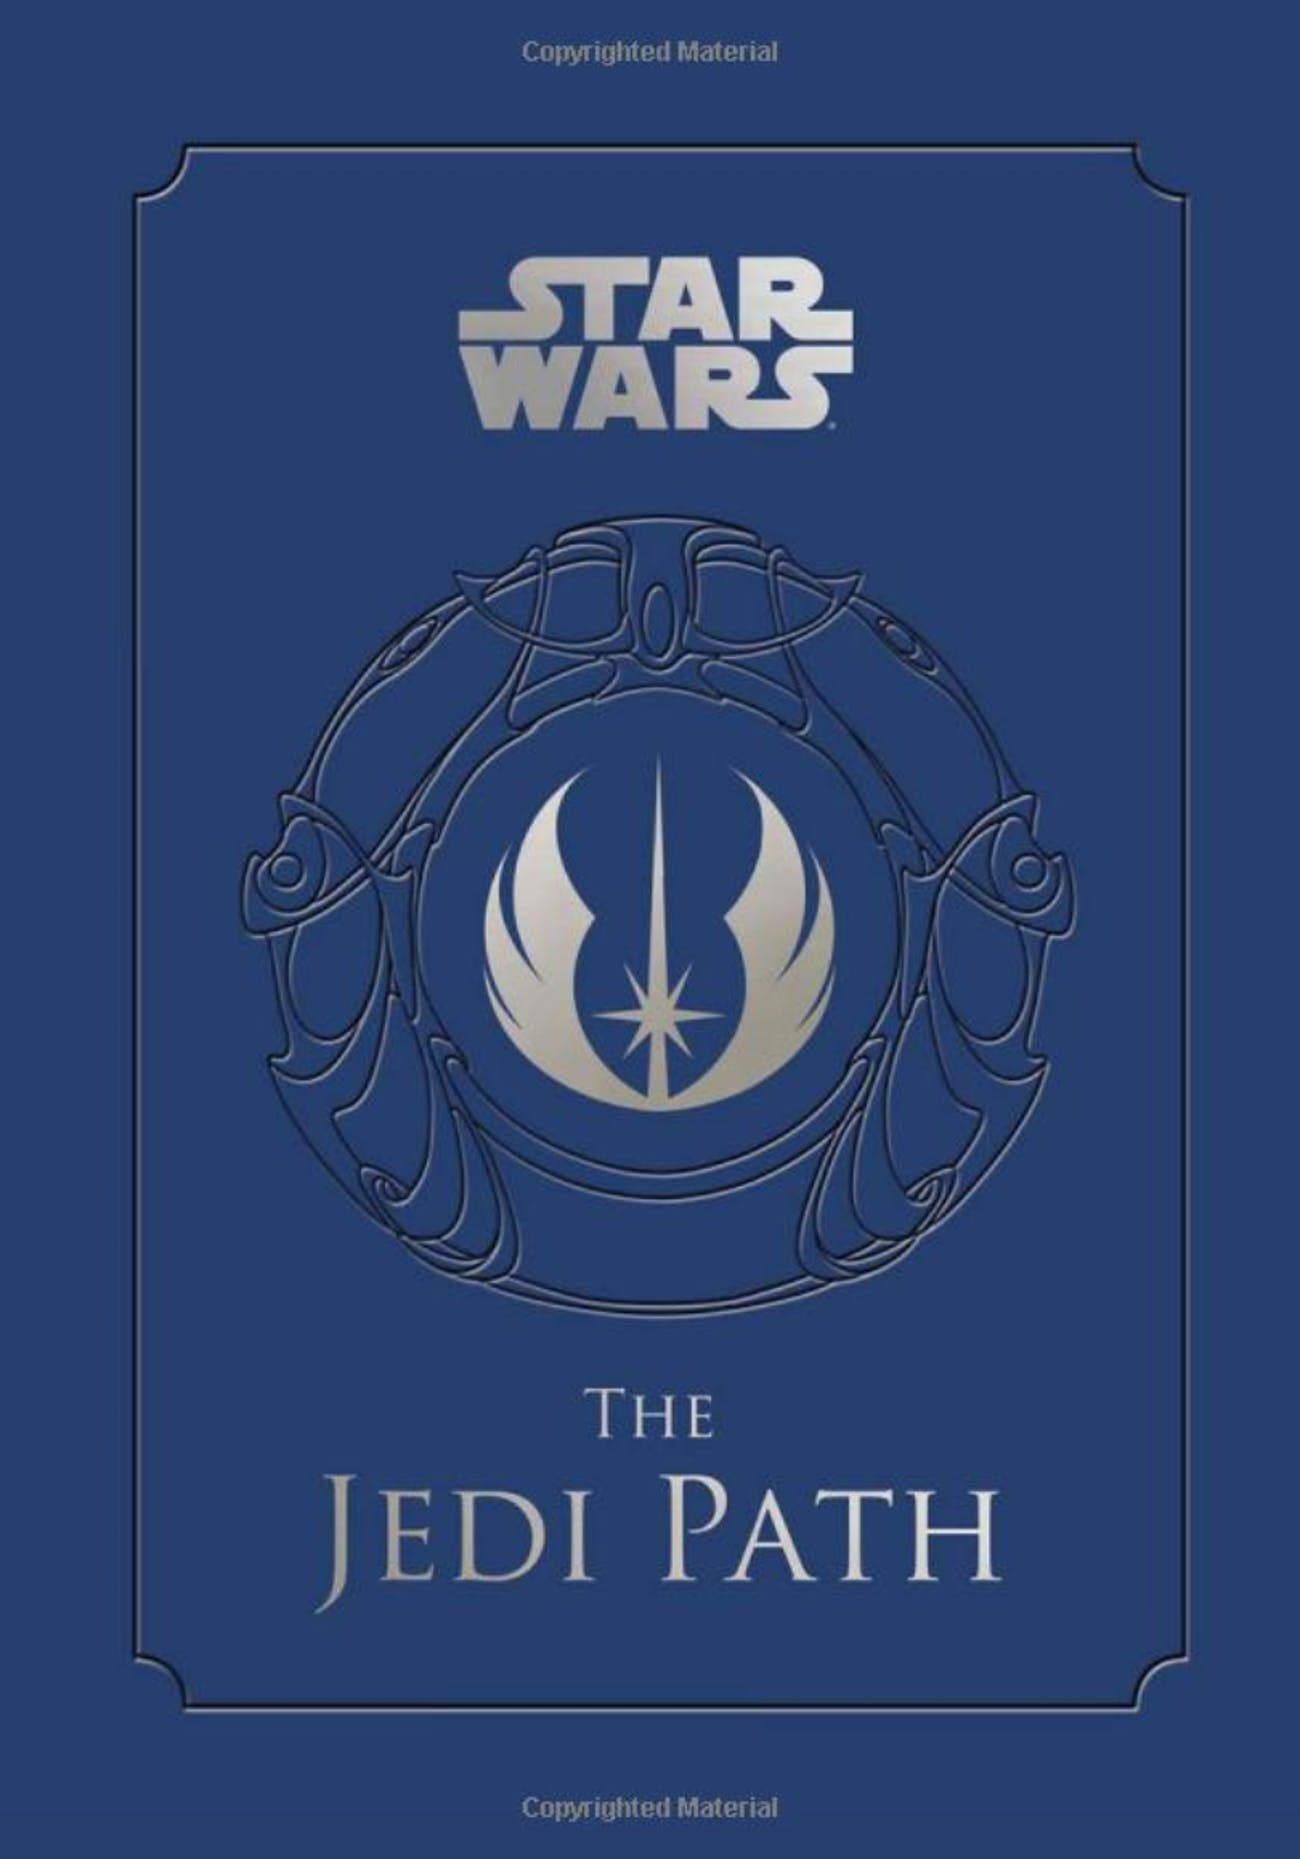 The cover of 'The Jedi Path'